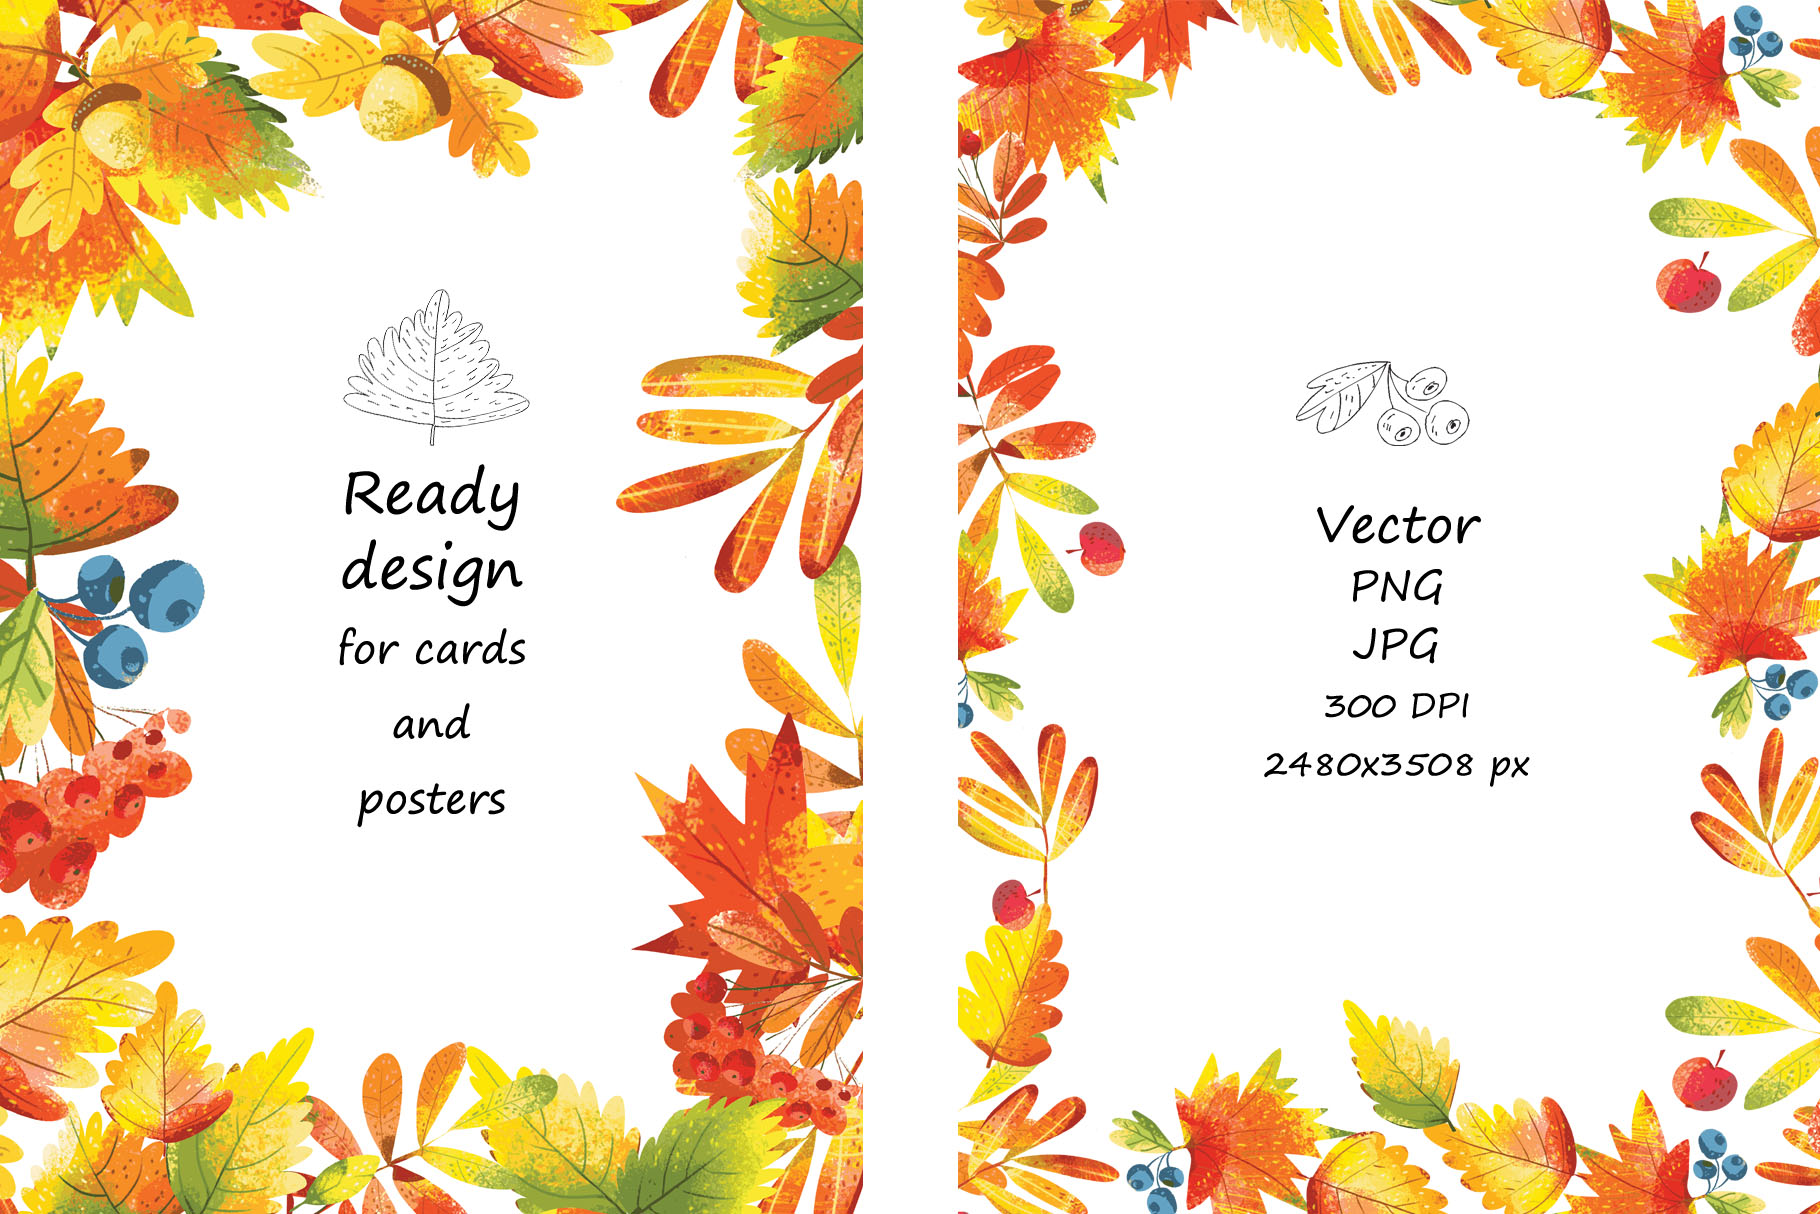 Autumn Leaves - over 30 objects, frames, patterns example image 4